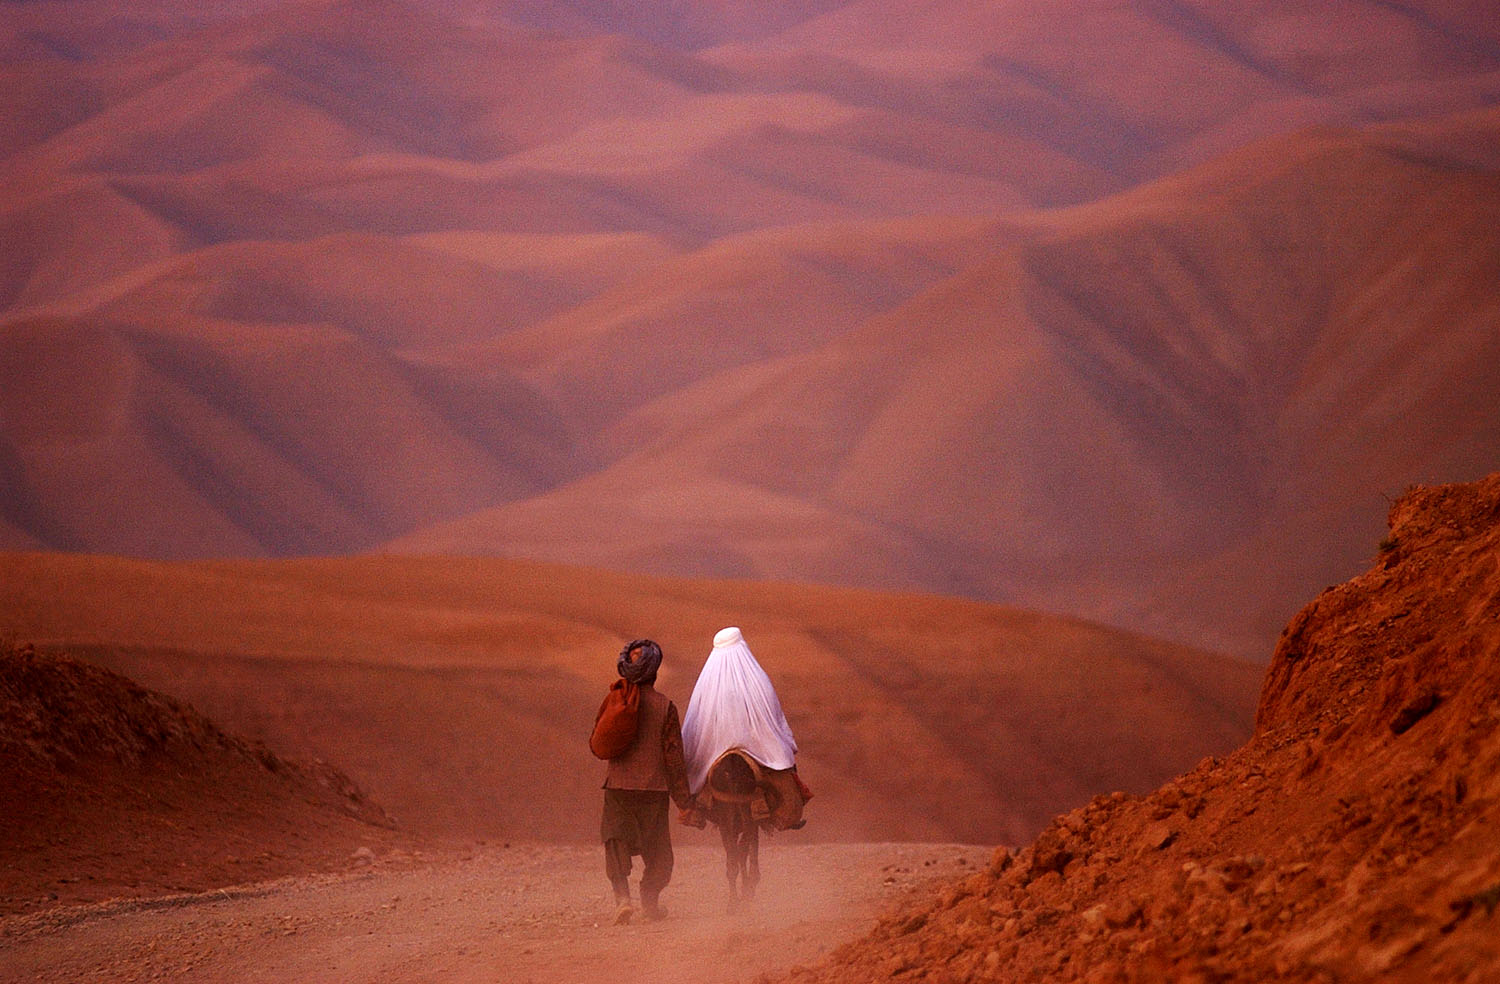 Photograph from James Hill's new book, Somewhere Between War and PeaceThe Couple, Badakhshan Province, Afghanistan. 2001.